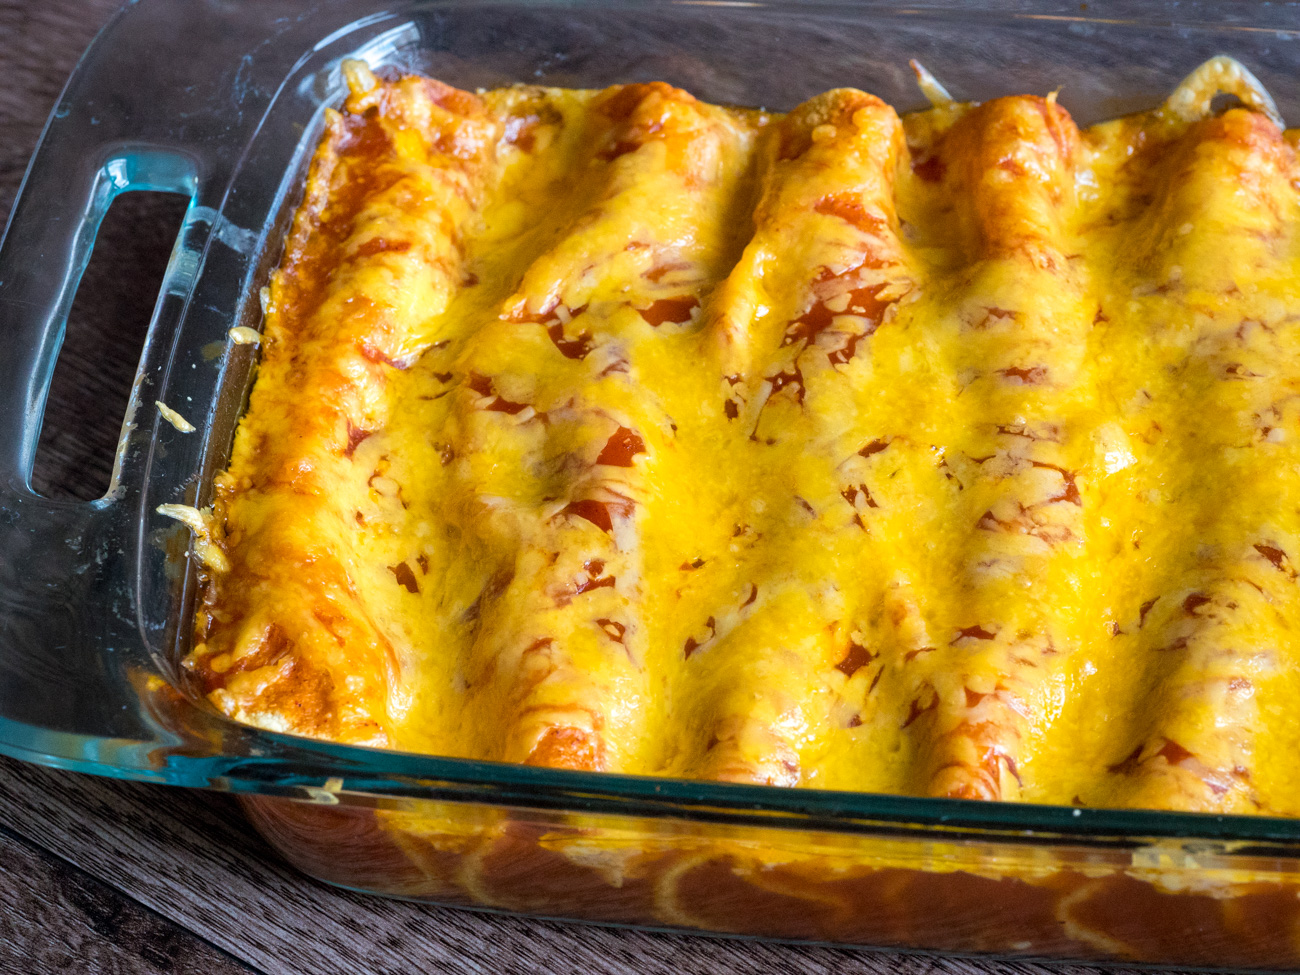 Bake until sauce is bubbly and cheese has melted, about 20 minutes. Serve with sour cream and cilantro and enjoy!